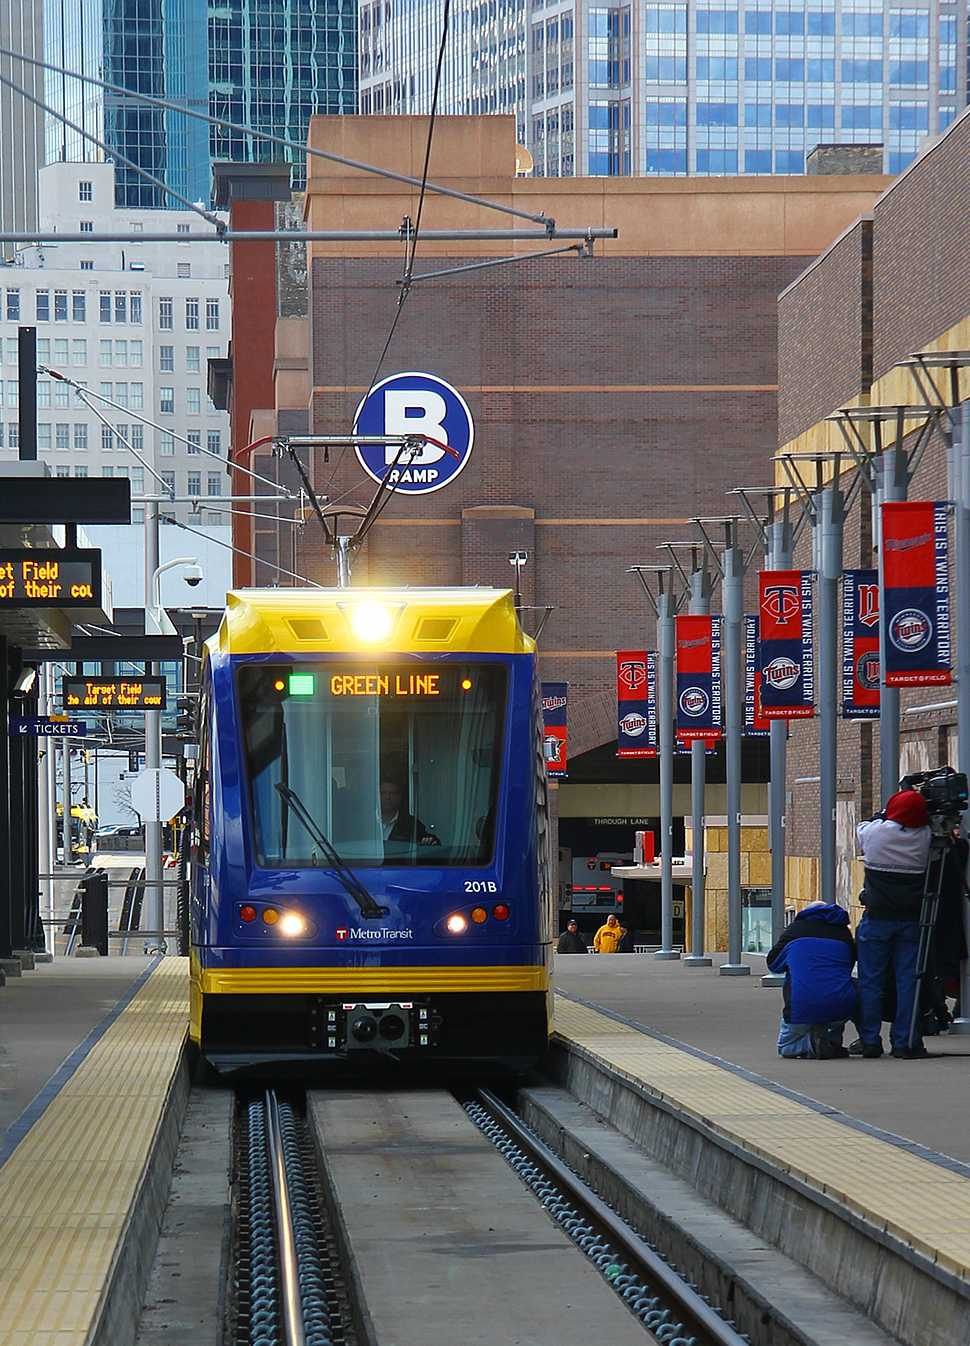 Catch the Green Line at the corner of University and Snelling Ave. Photo courtesy of Wikipedia via Creative Commons.